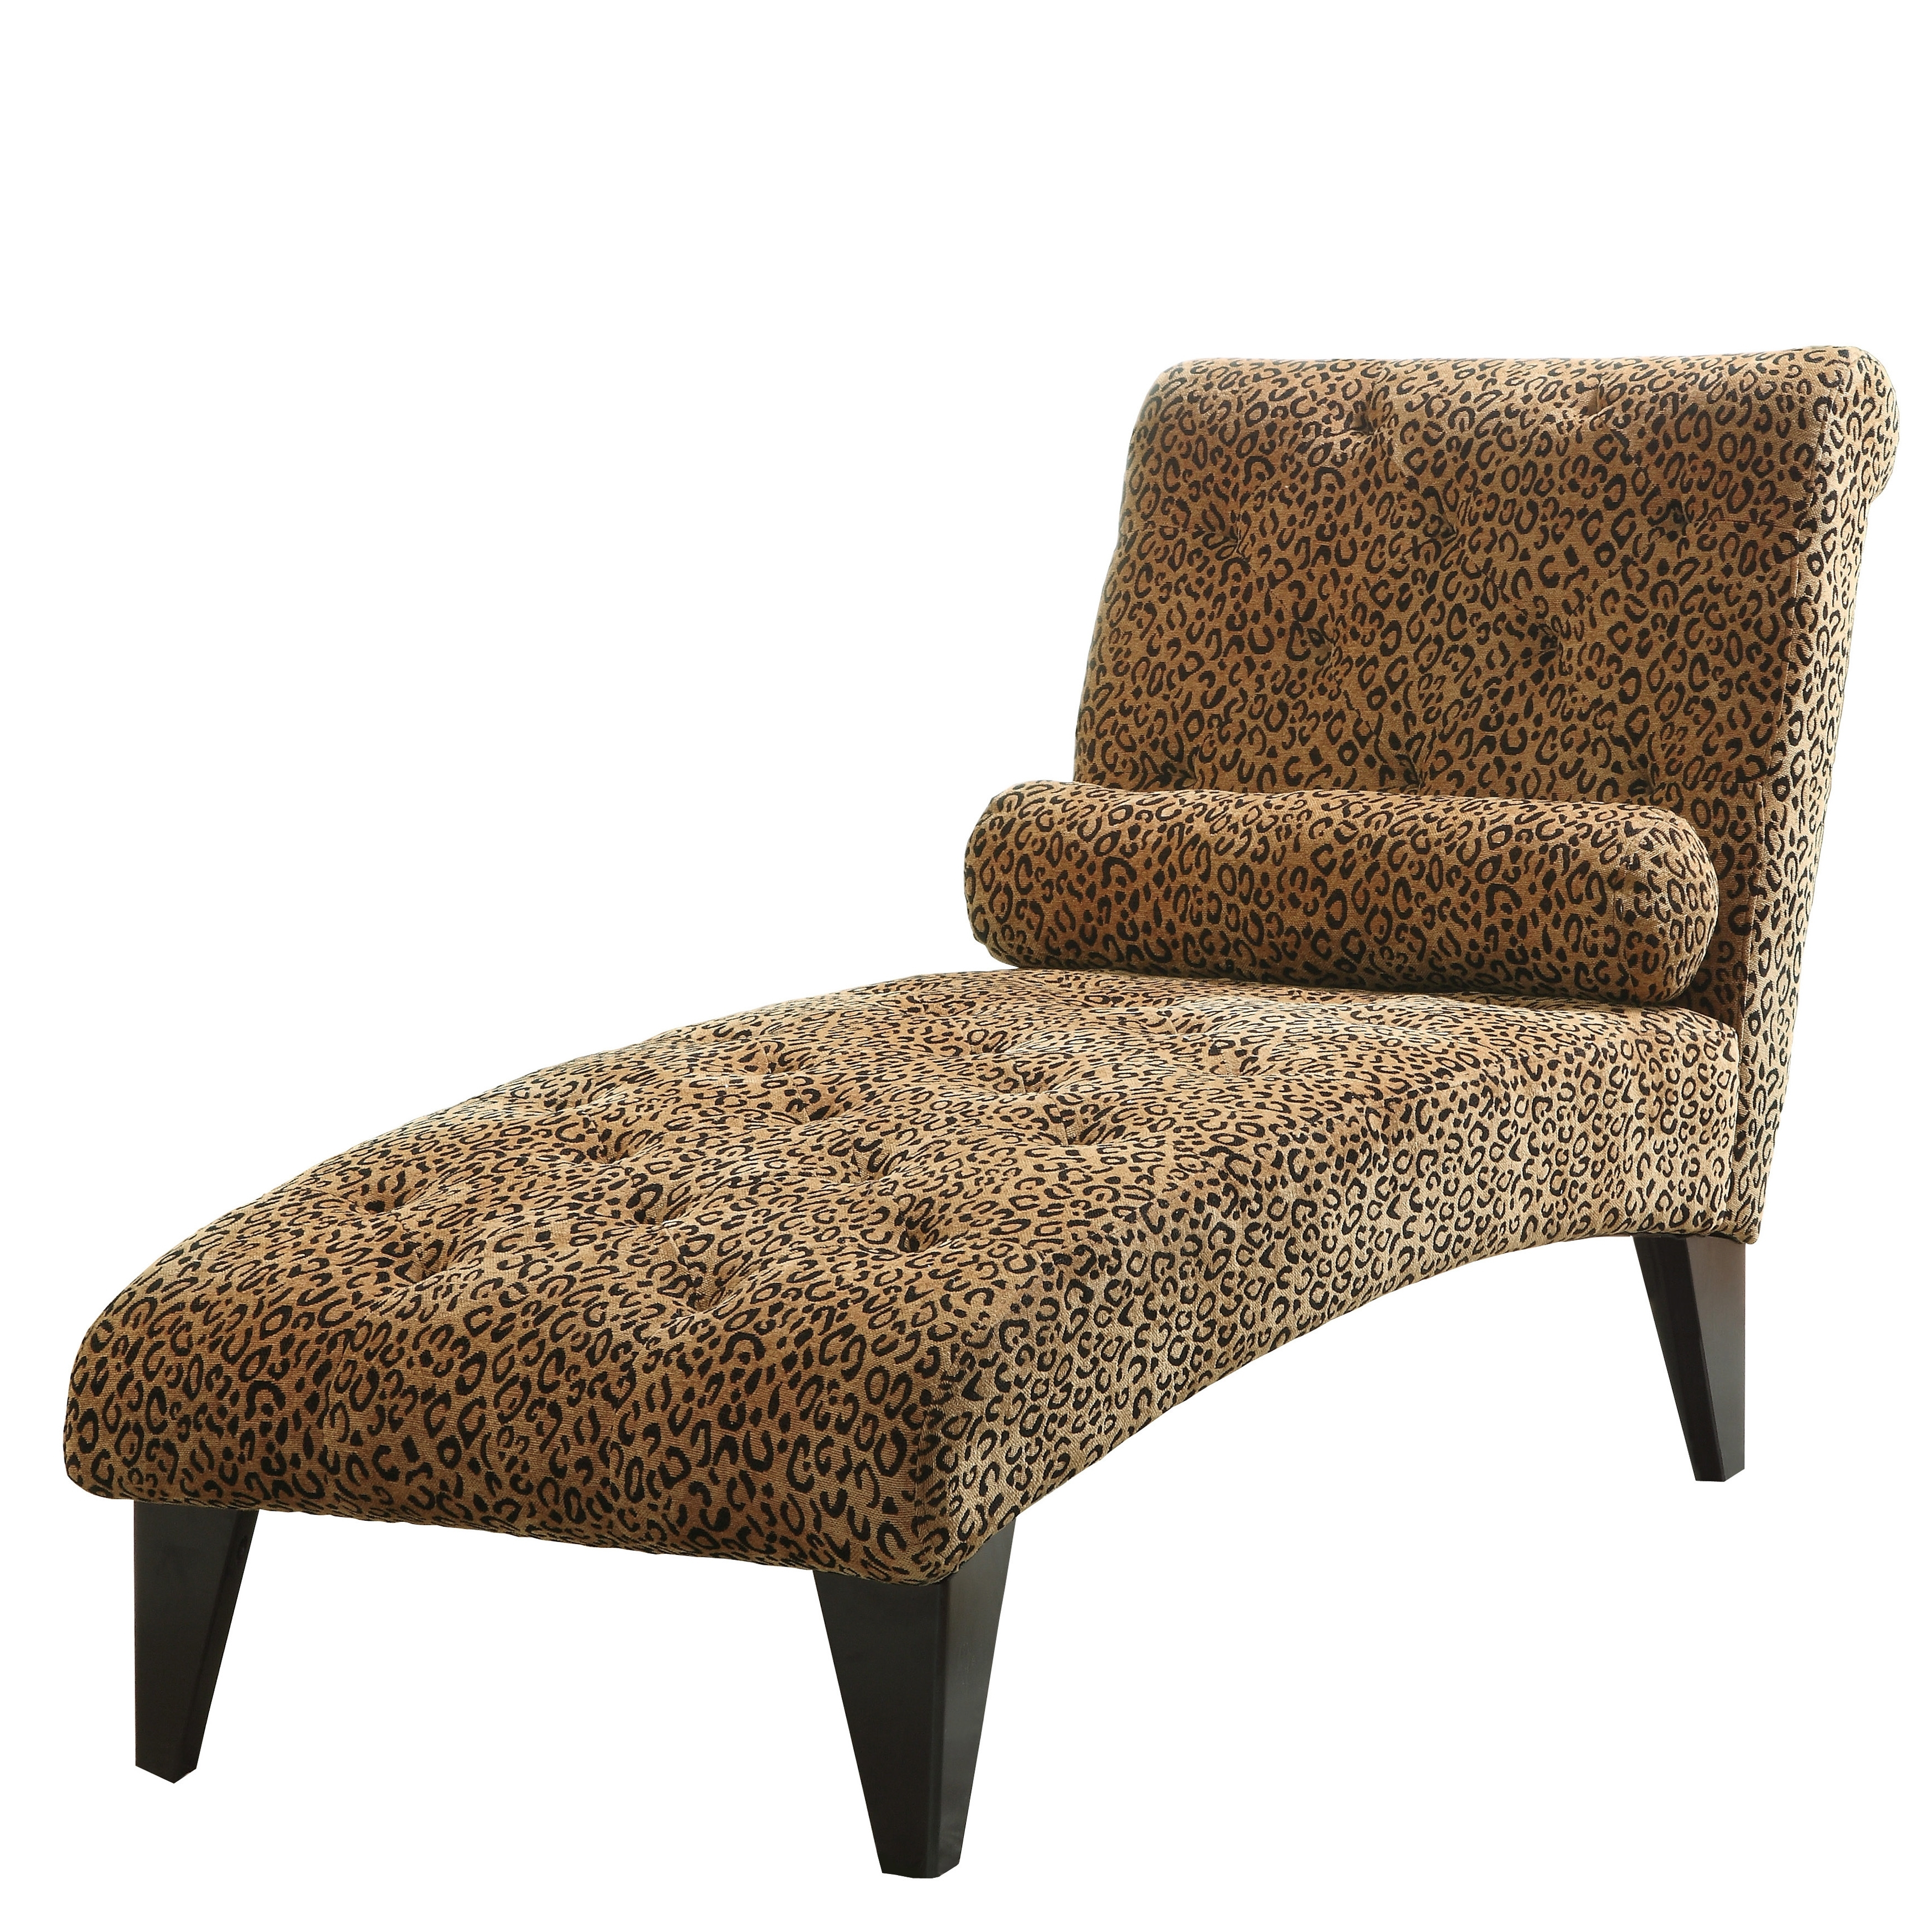 Leopard Print Chaise Lounge Chair • Lounge Chairs Ideas In Newest Coaster Chaise Lounges (View 10 of 15)